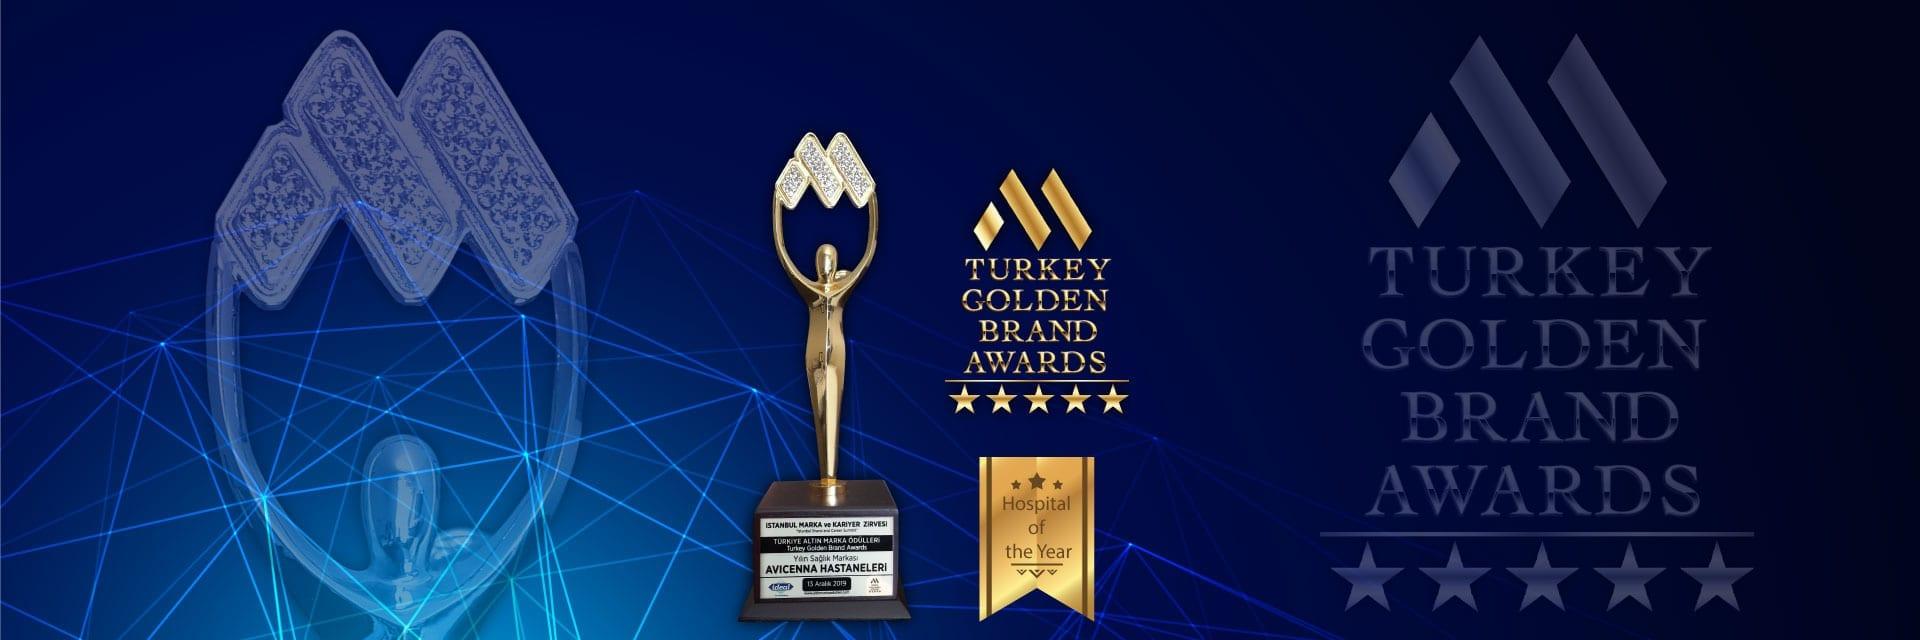 Turkey Golden Brand Awards